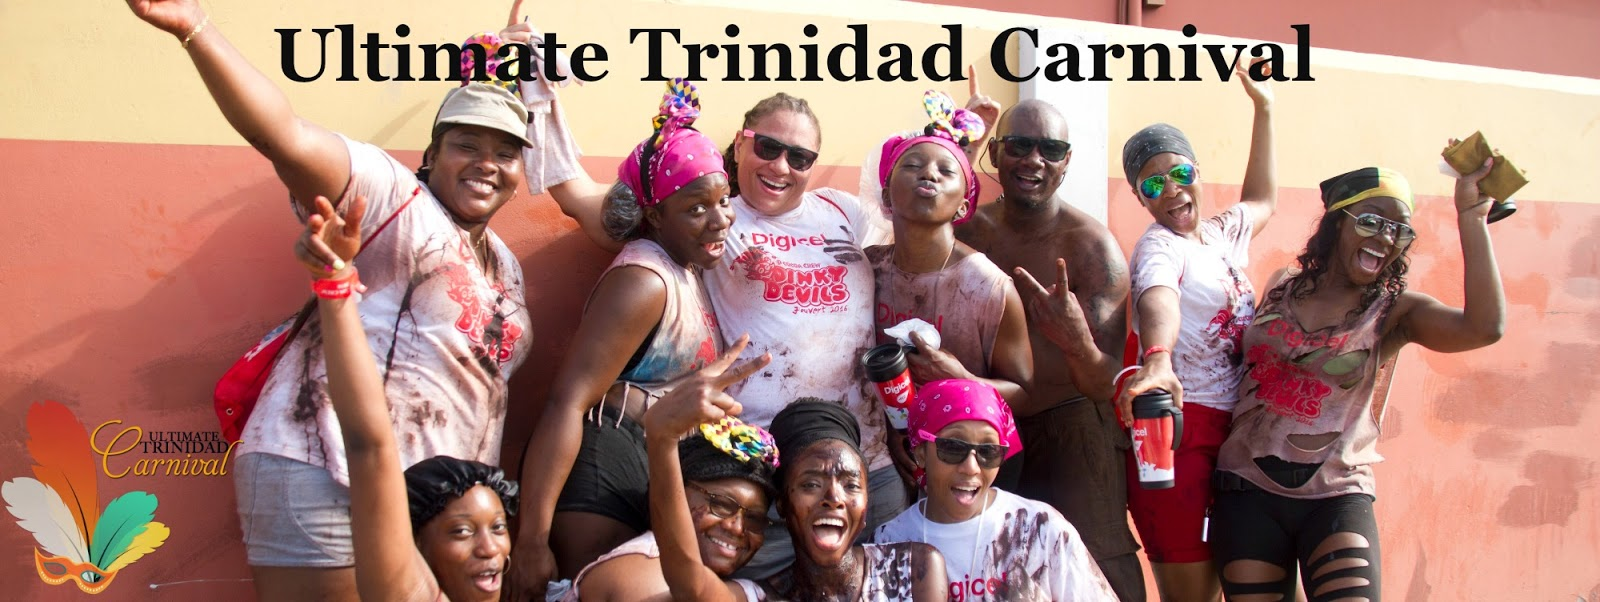 Trinidad Carnival Banners Papel Picado Banners